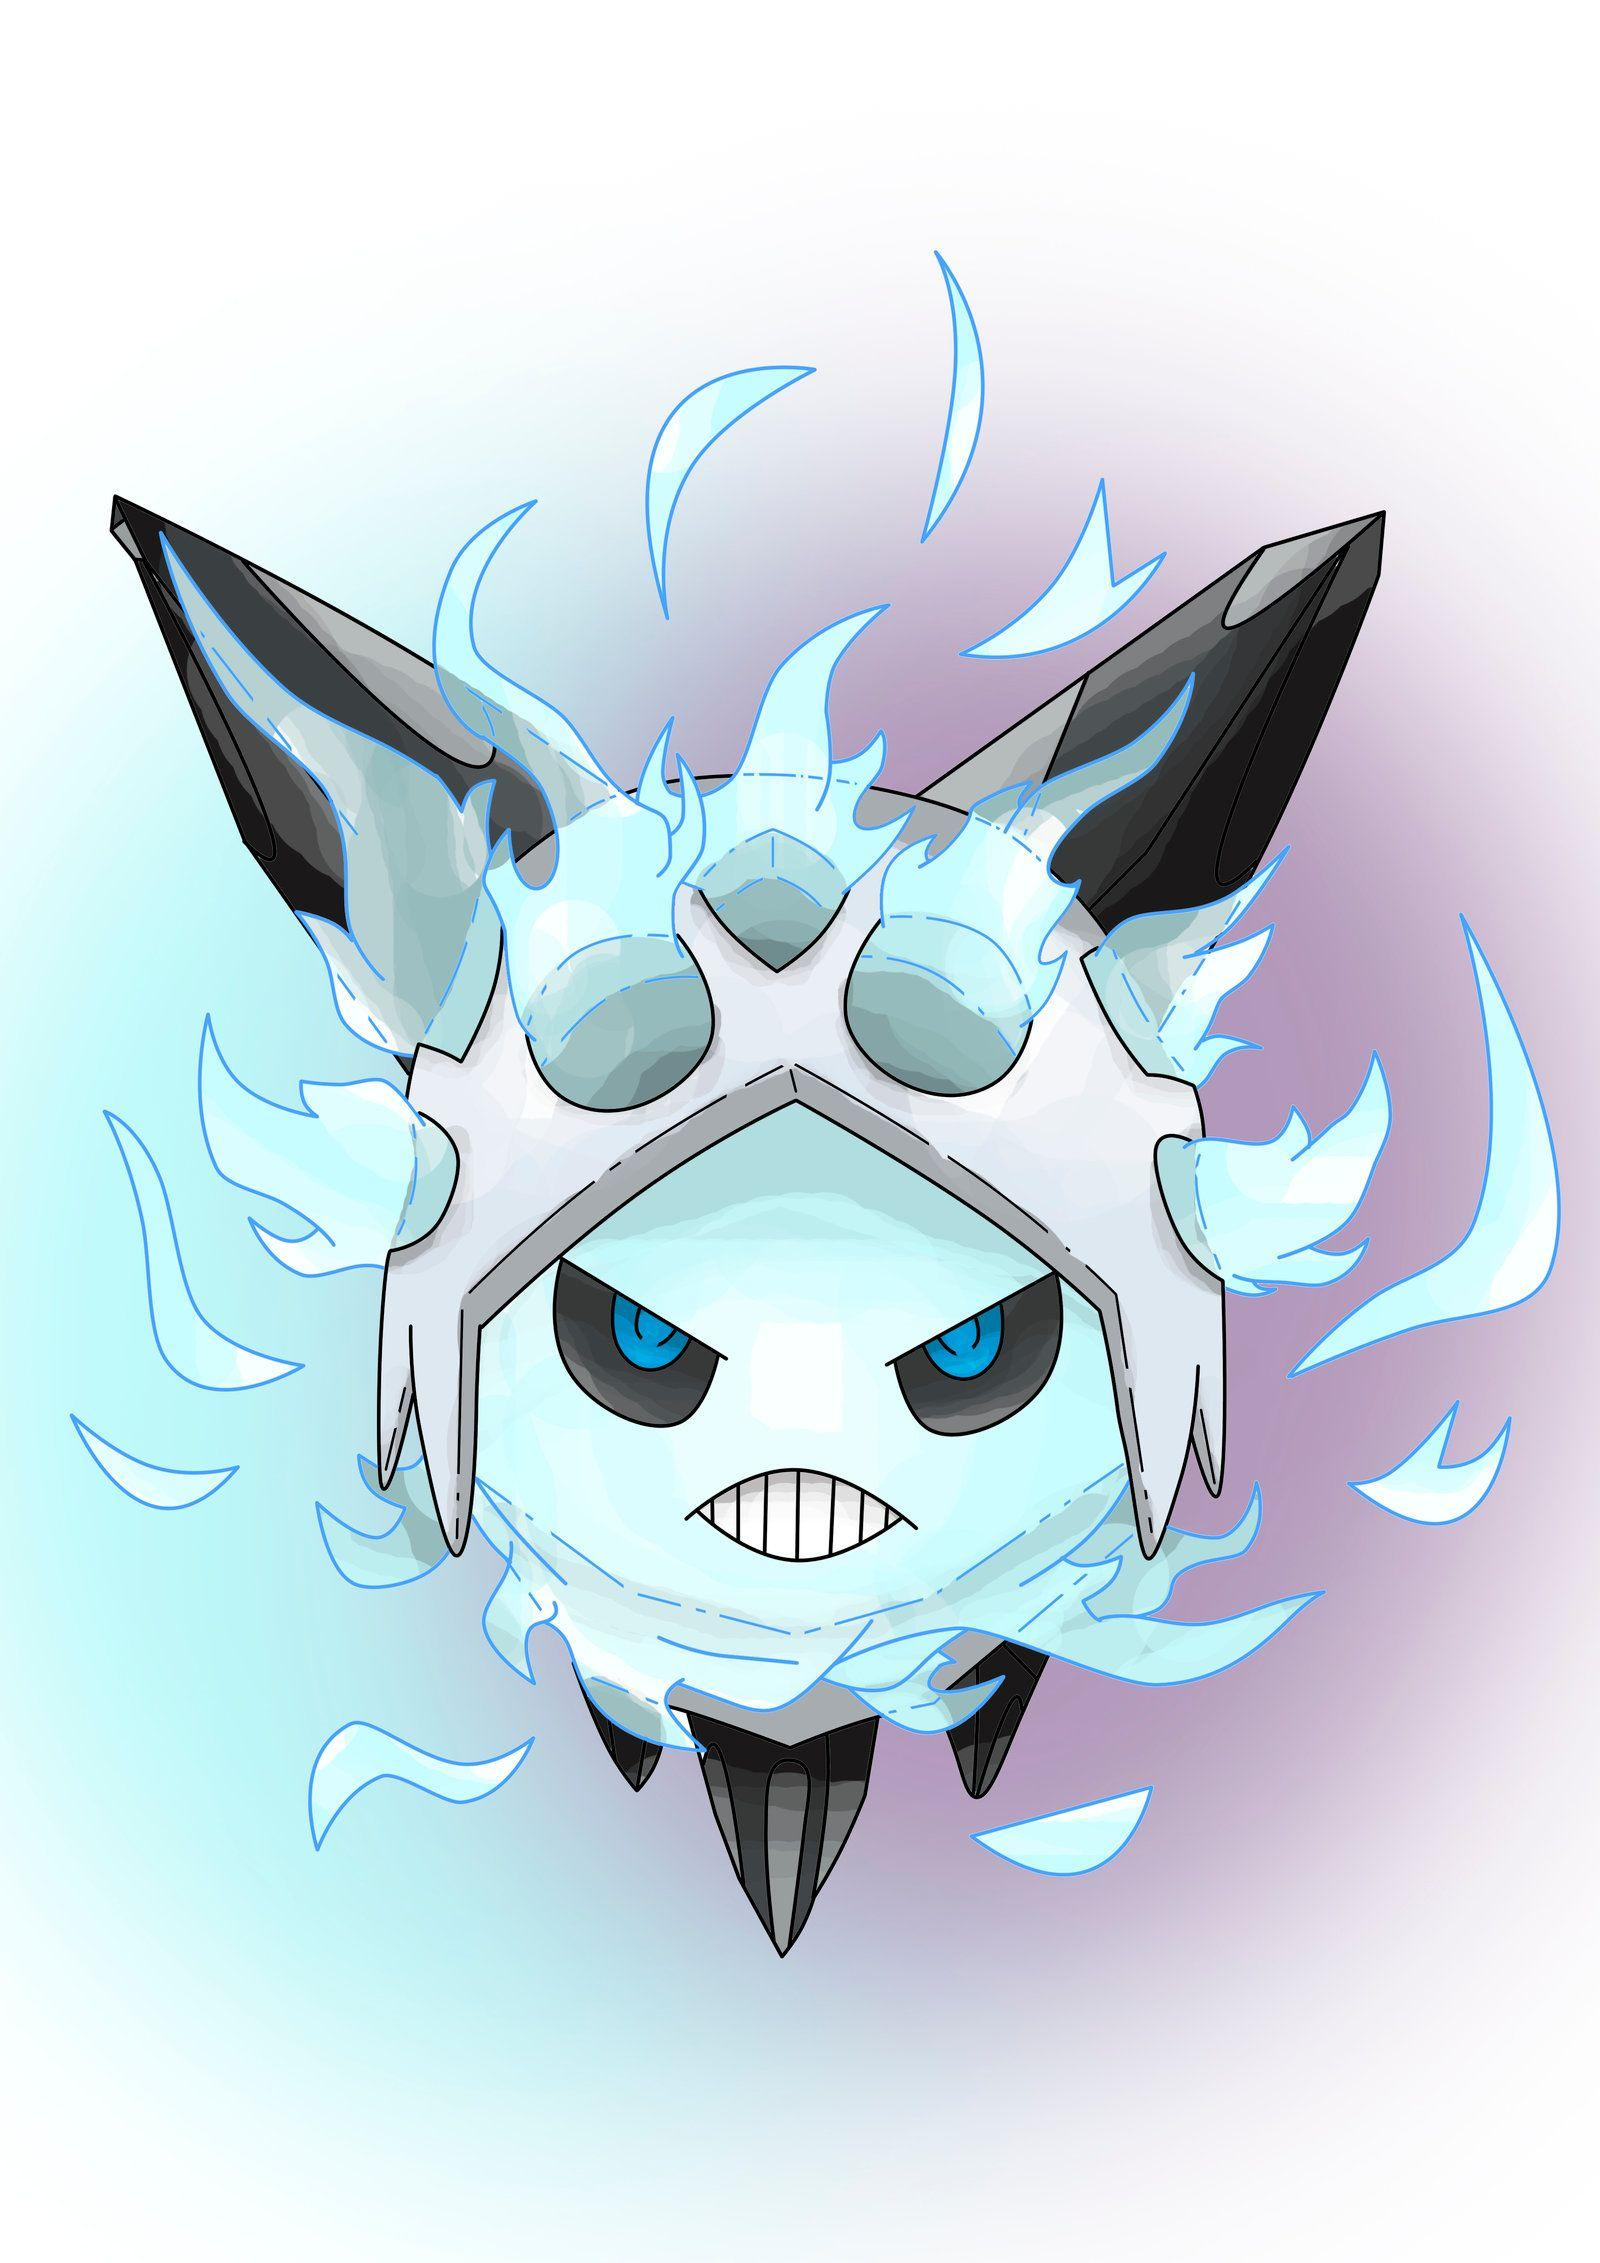 Mega Glalie by miguetricker on DeviantArt